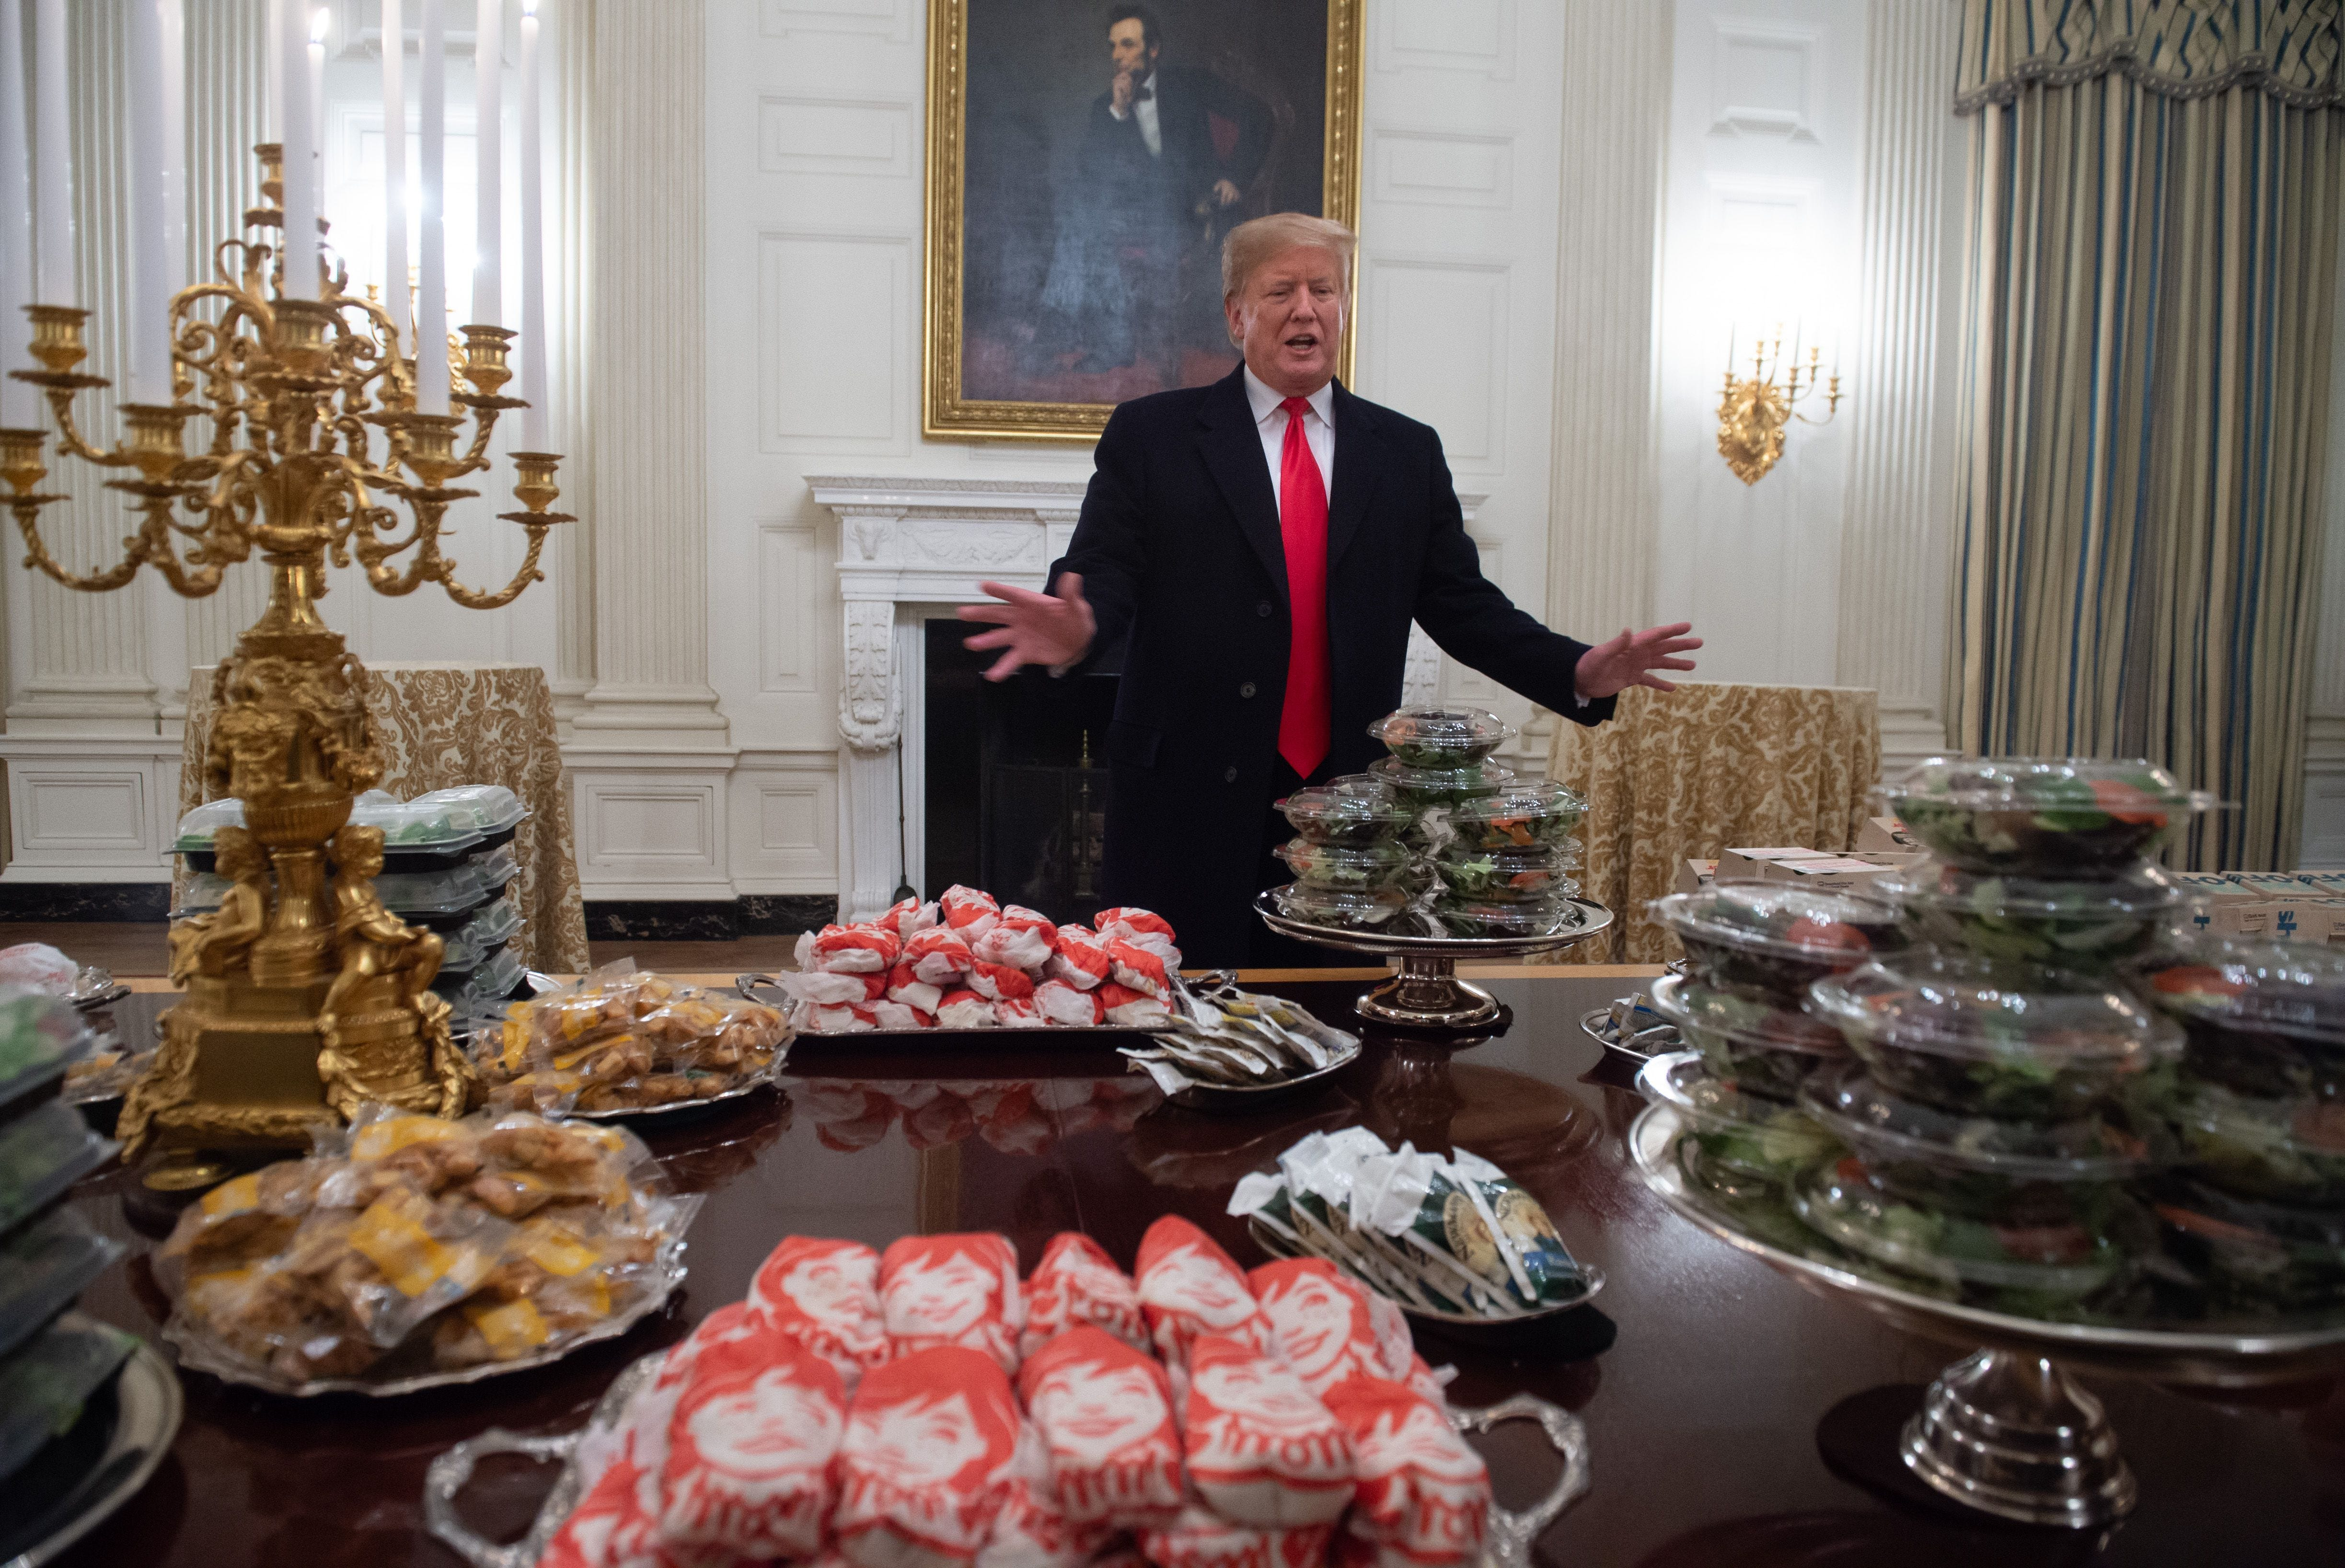 Burger King trolls Trump on including 'hamberders' in 'massive' fast food order